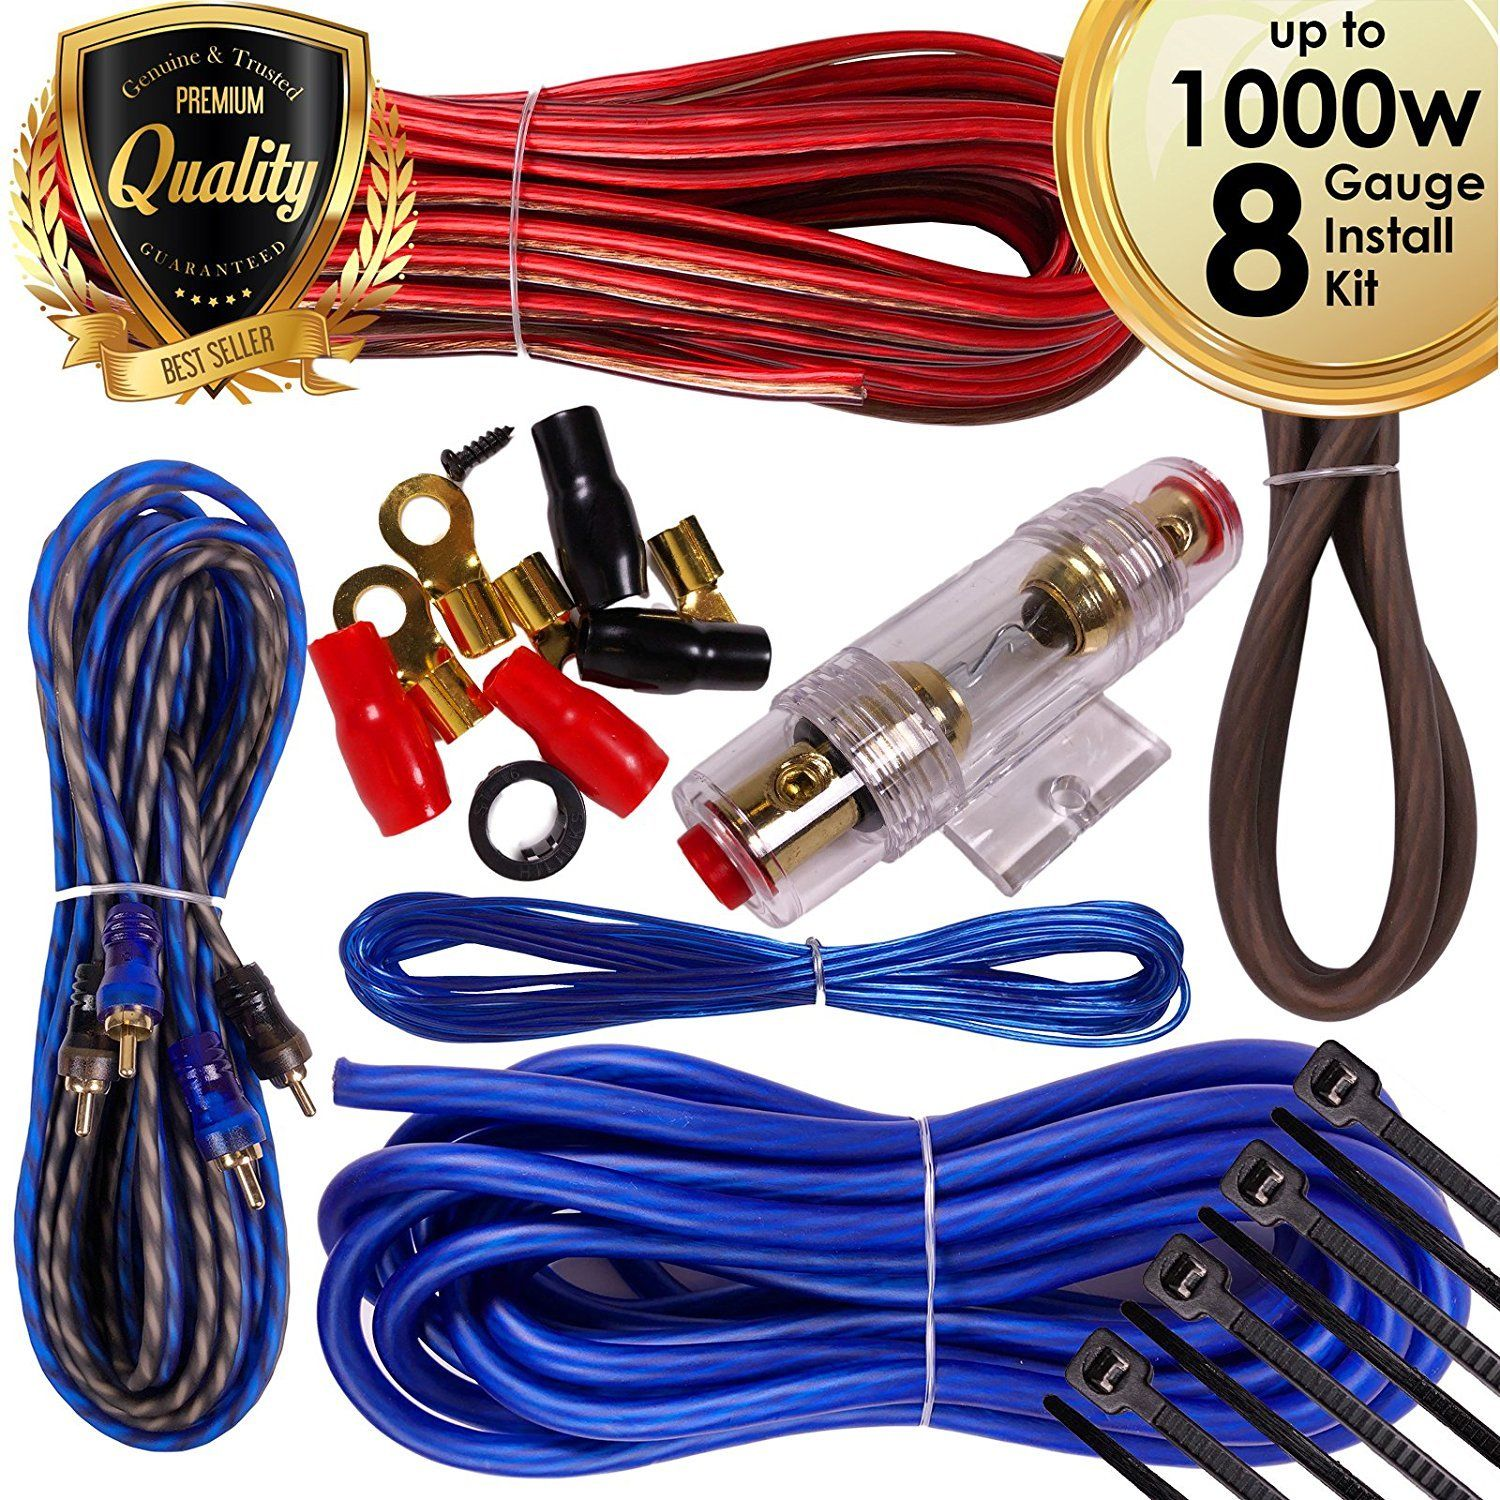 hight resolution of mobile audio wiring kits wiring library diagram a4 panasonic car stereo wiring diagram amplifier wiring kits